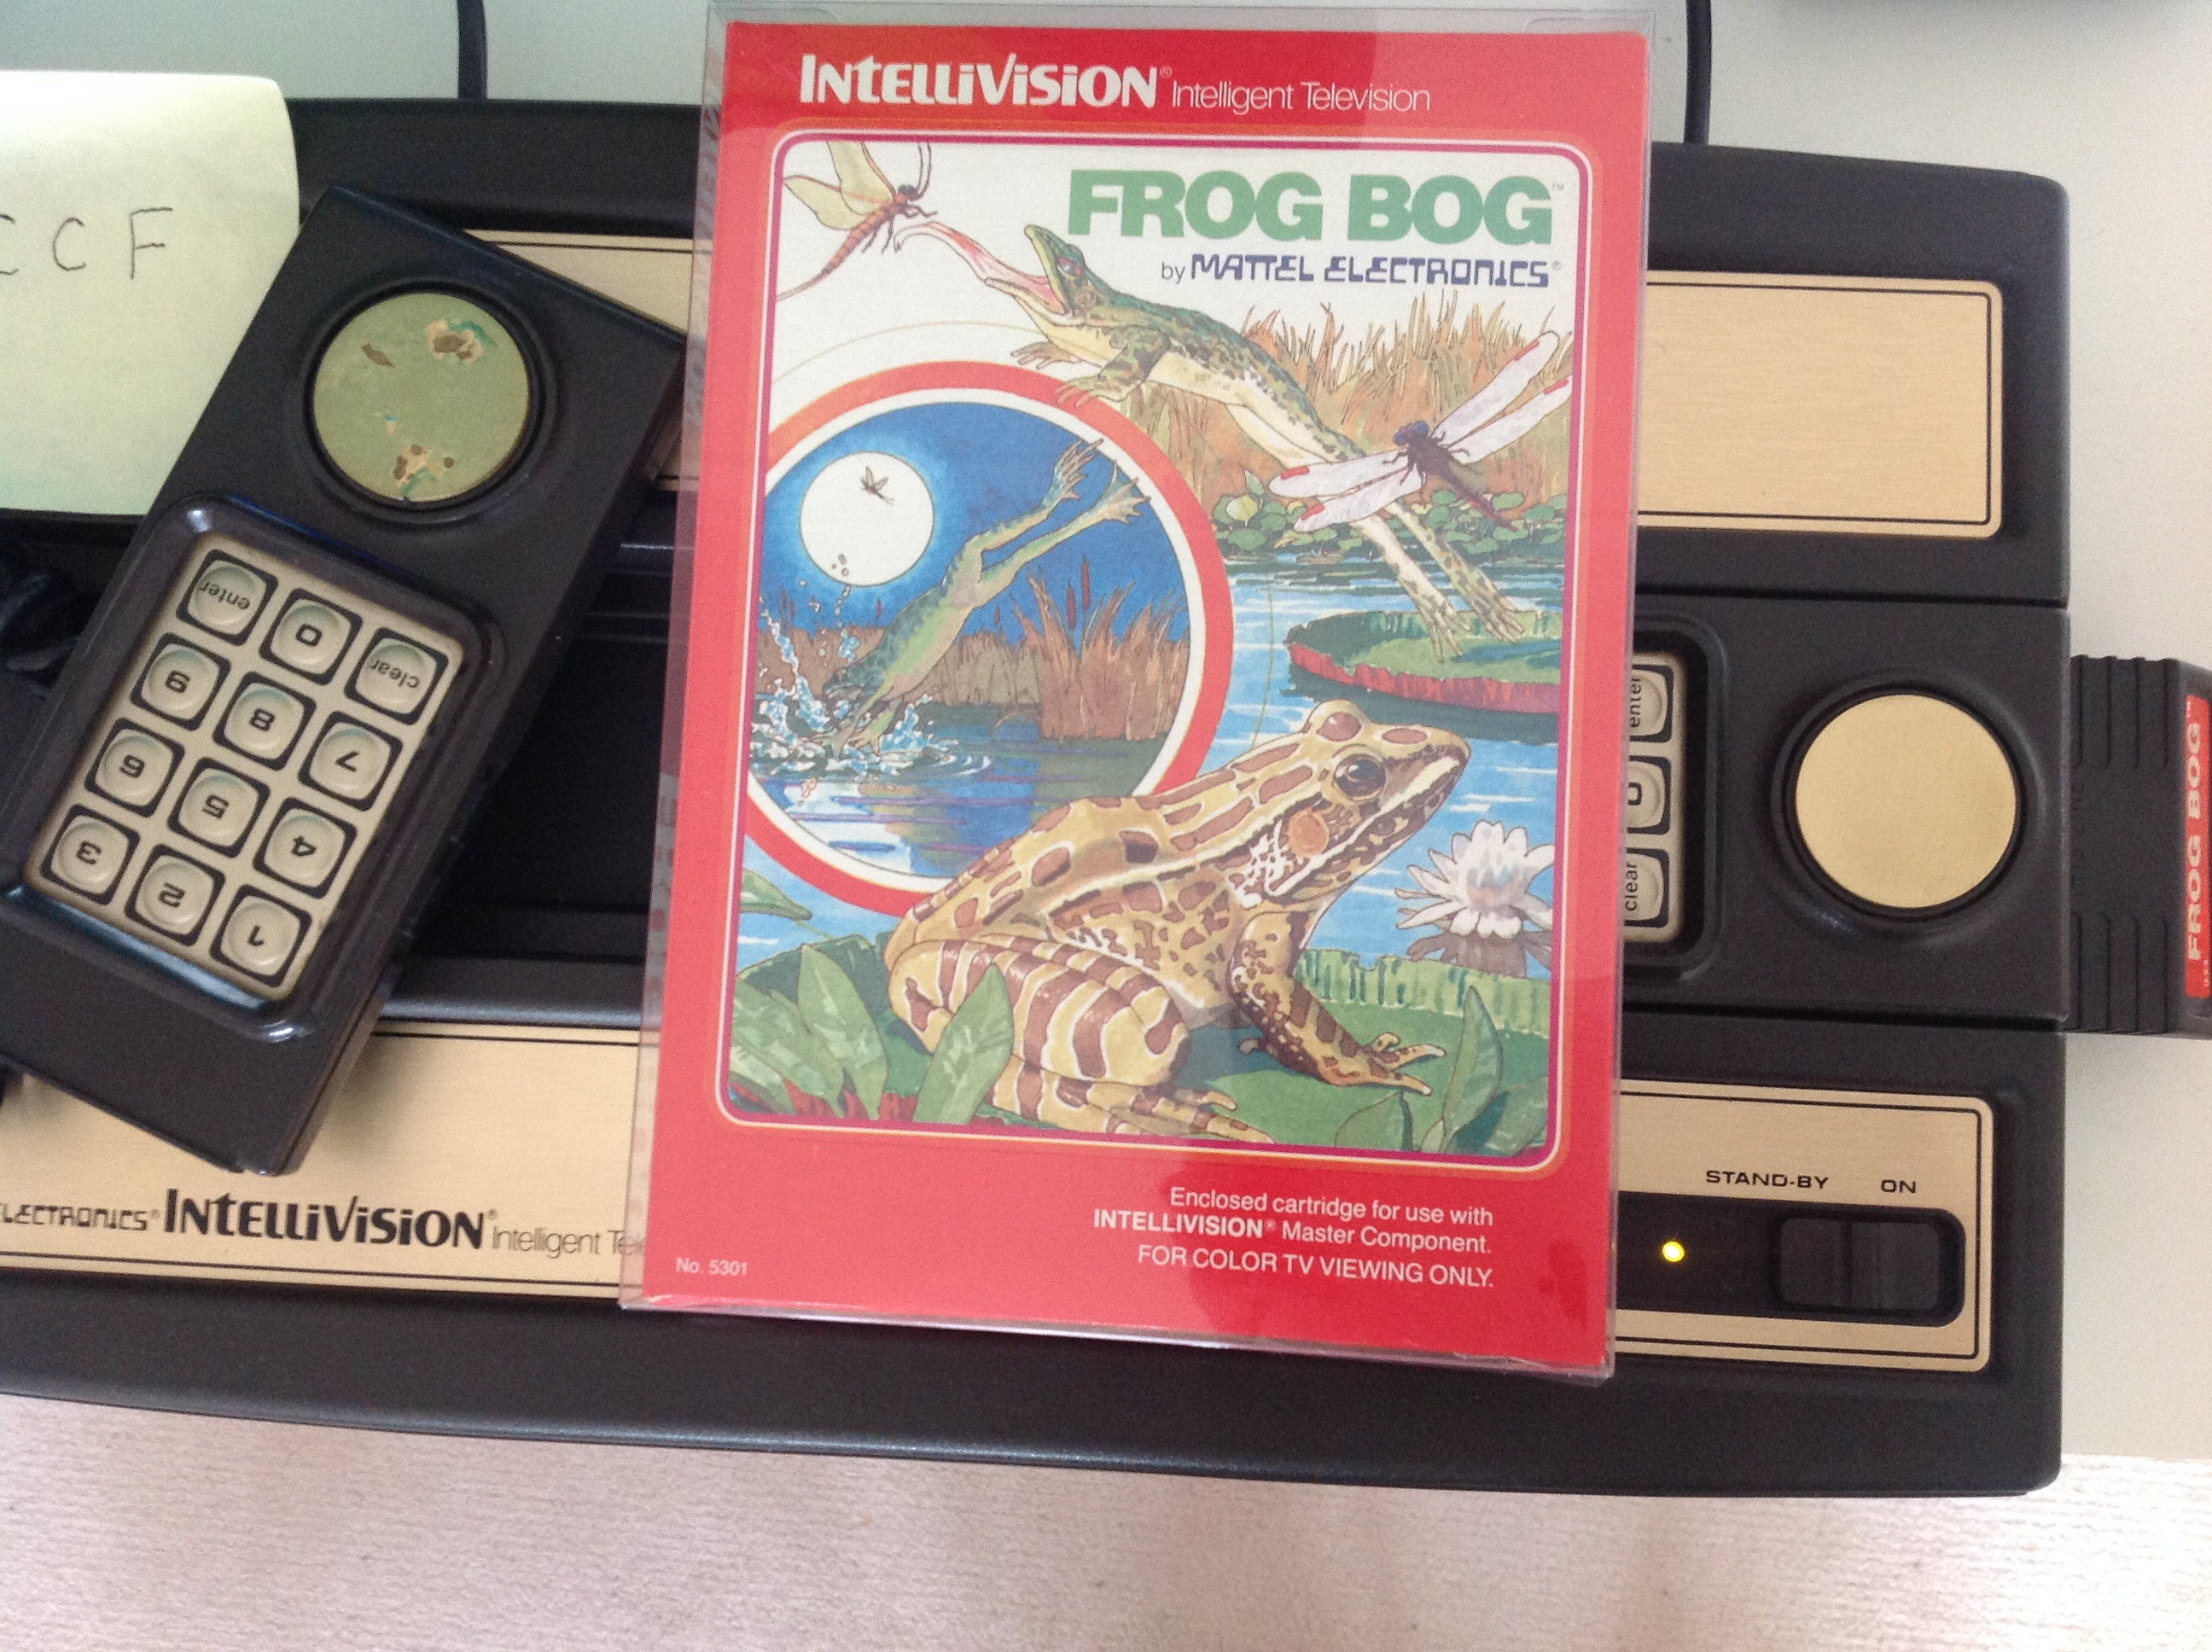 CoCoForest: Frog Bog [Dir. & Tongue] (Intellivision) 335 points on 2018-08-01 13:46:43